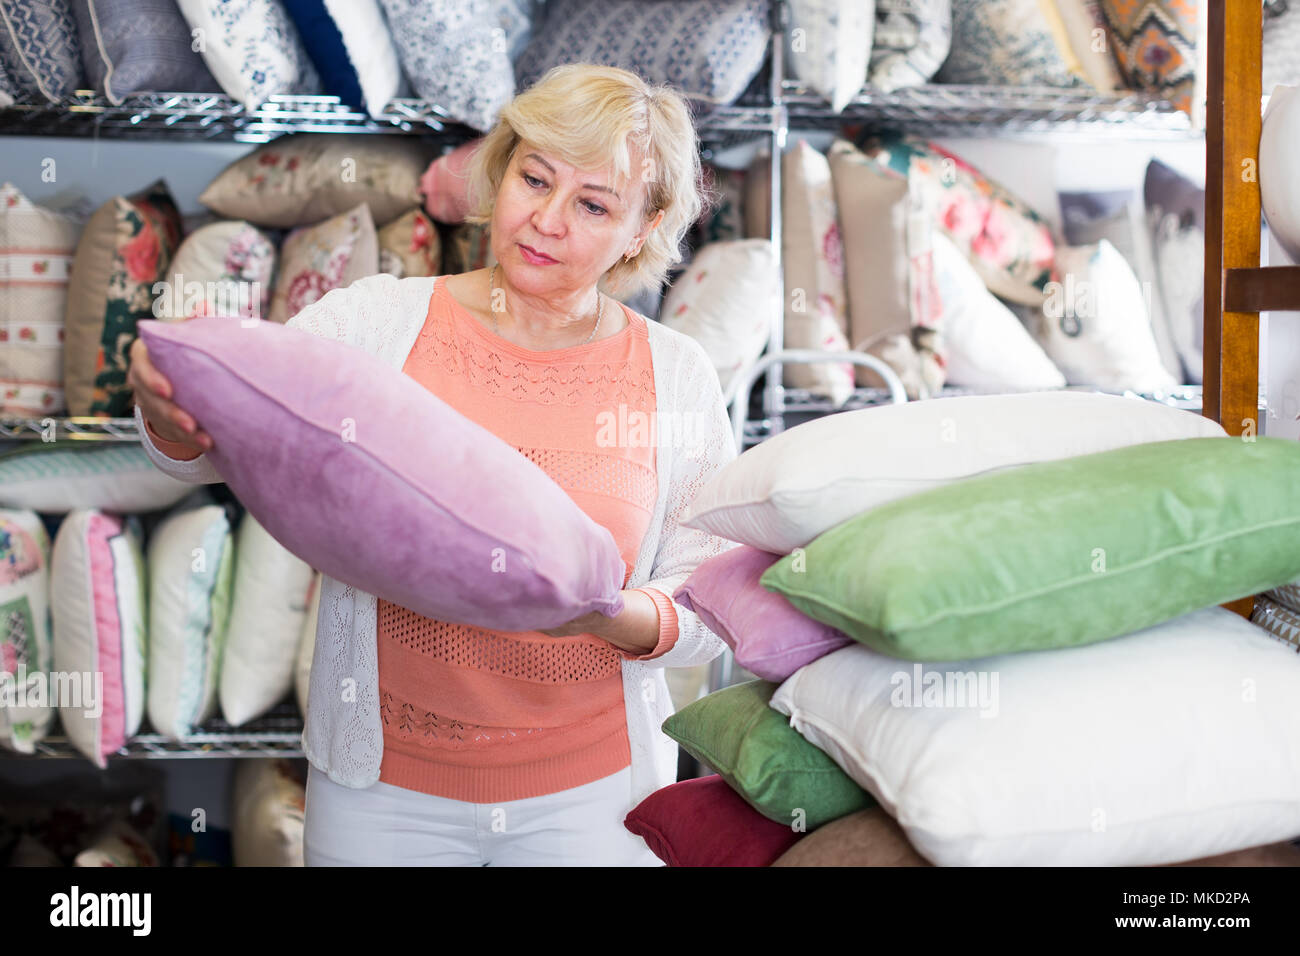 mature woman purchaser holding soft pillows in the textile shop - Stock Image